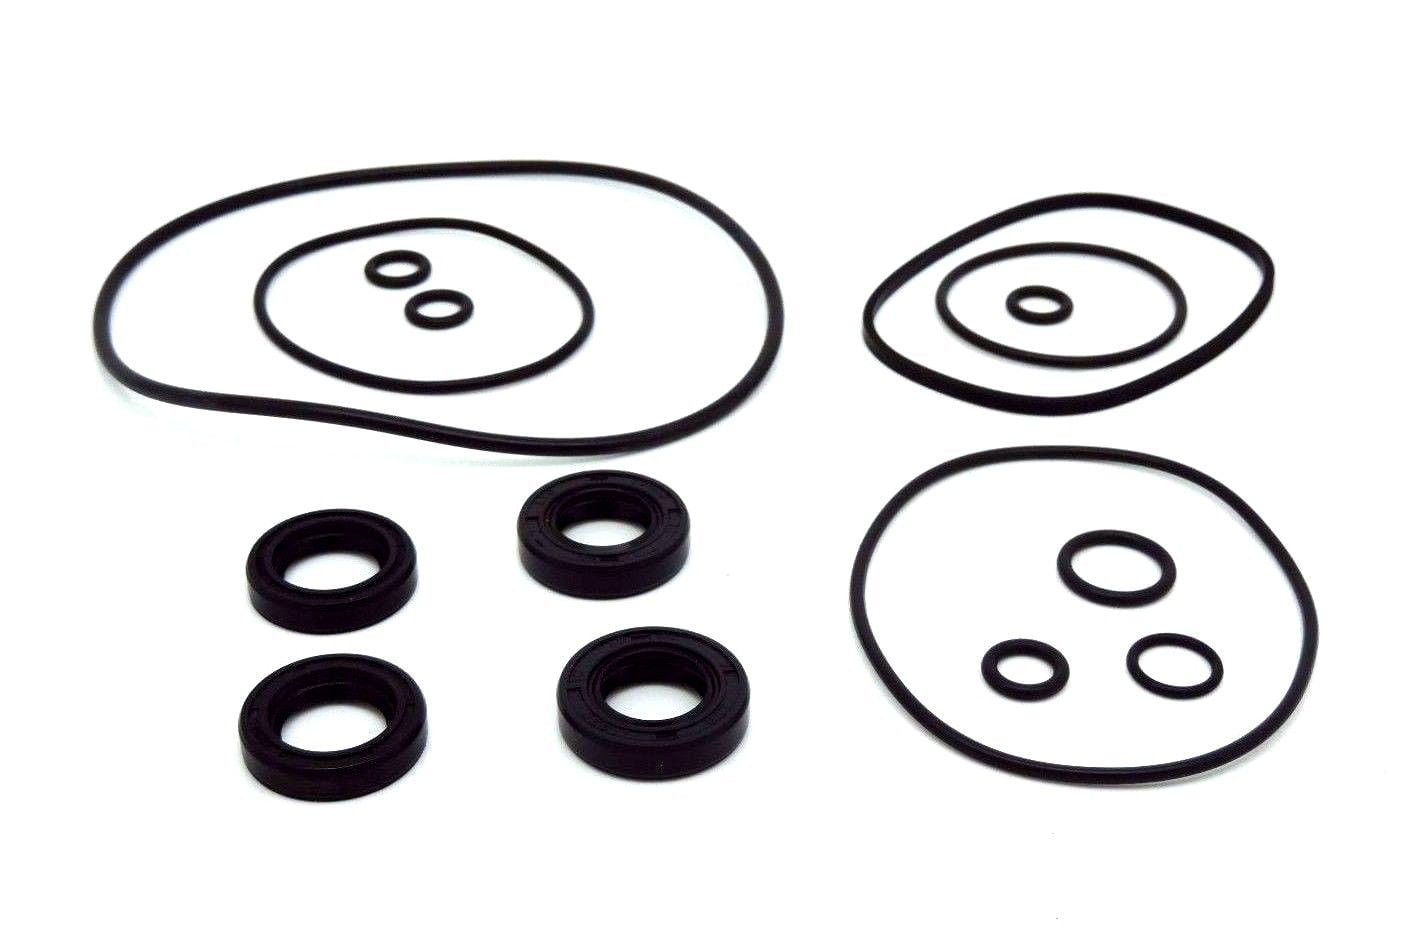 POWER STEERING PUMP SEAL KIT FITS FORD 4610 5610 6610 7610